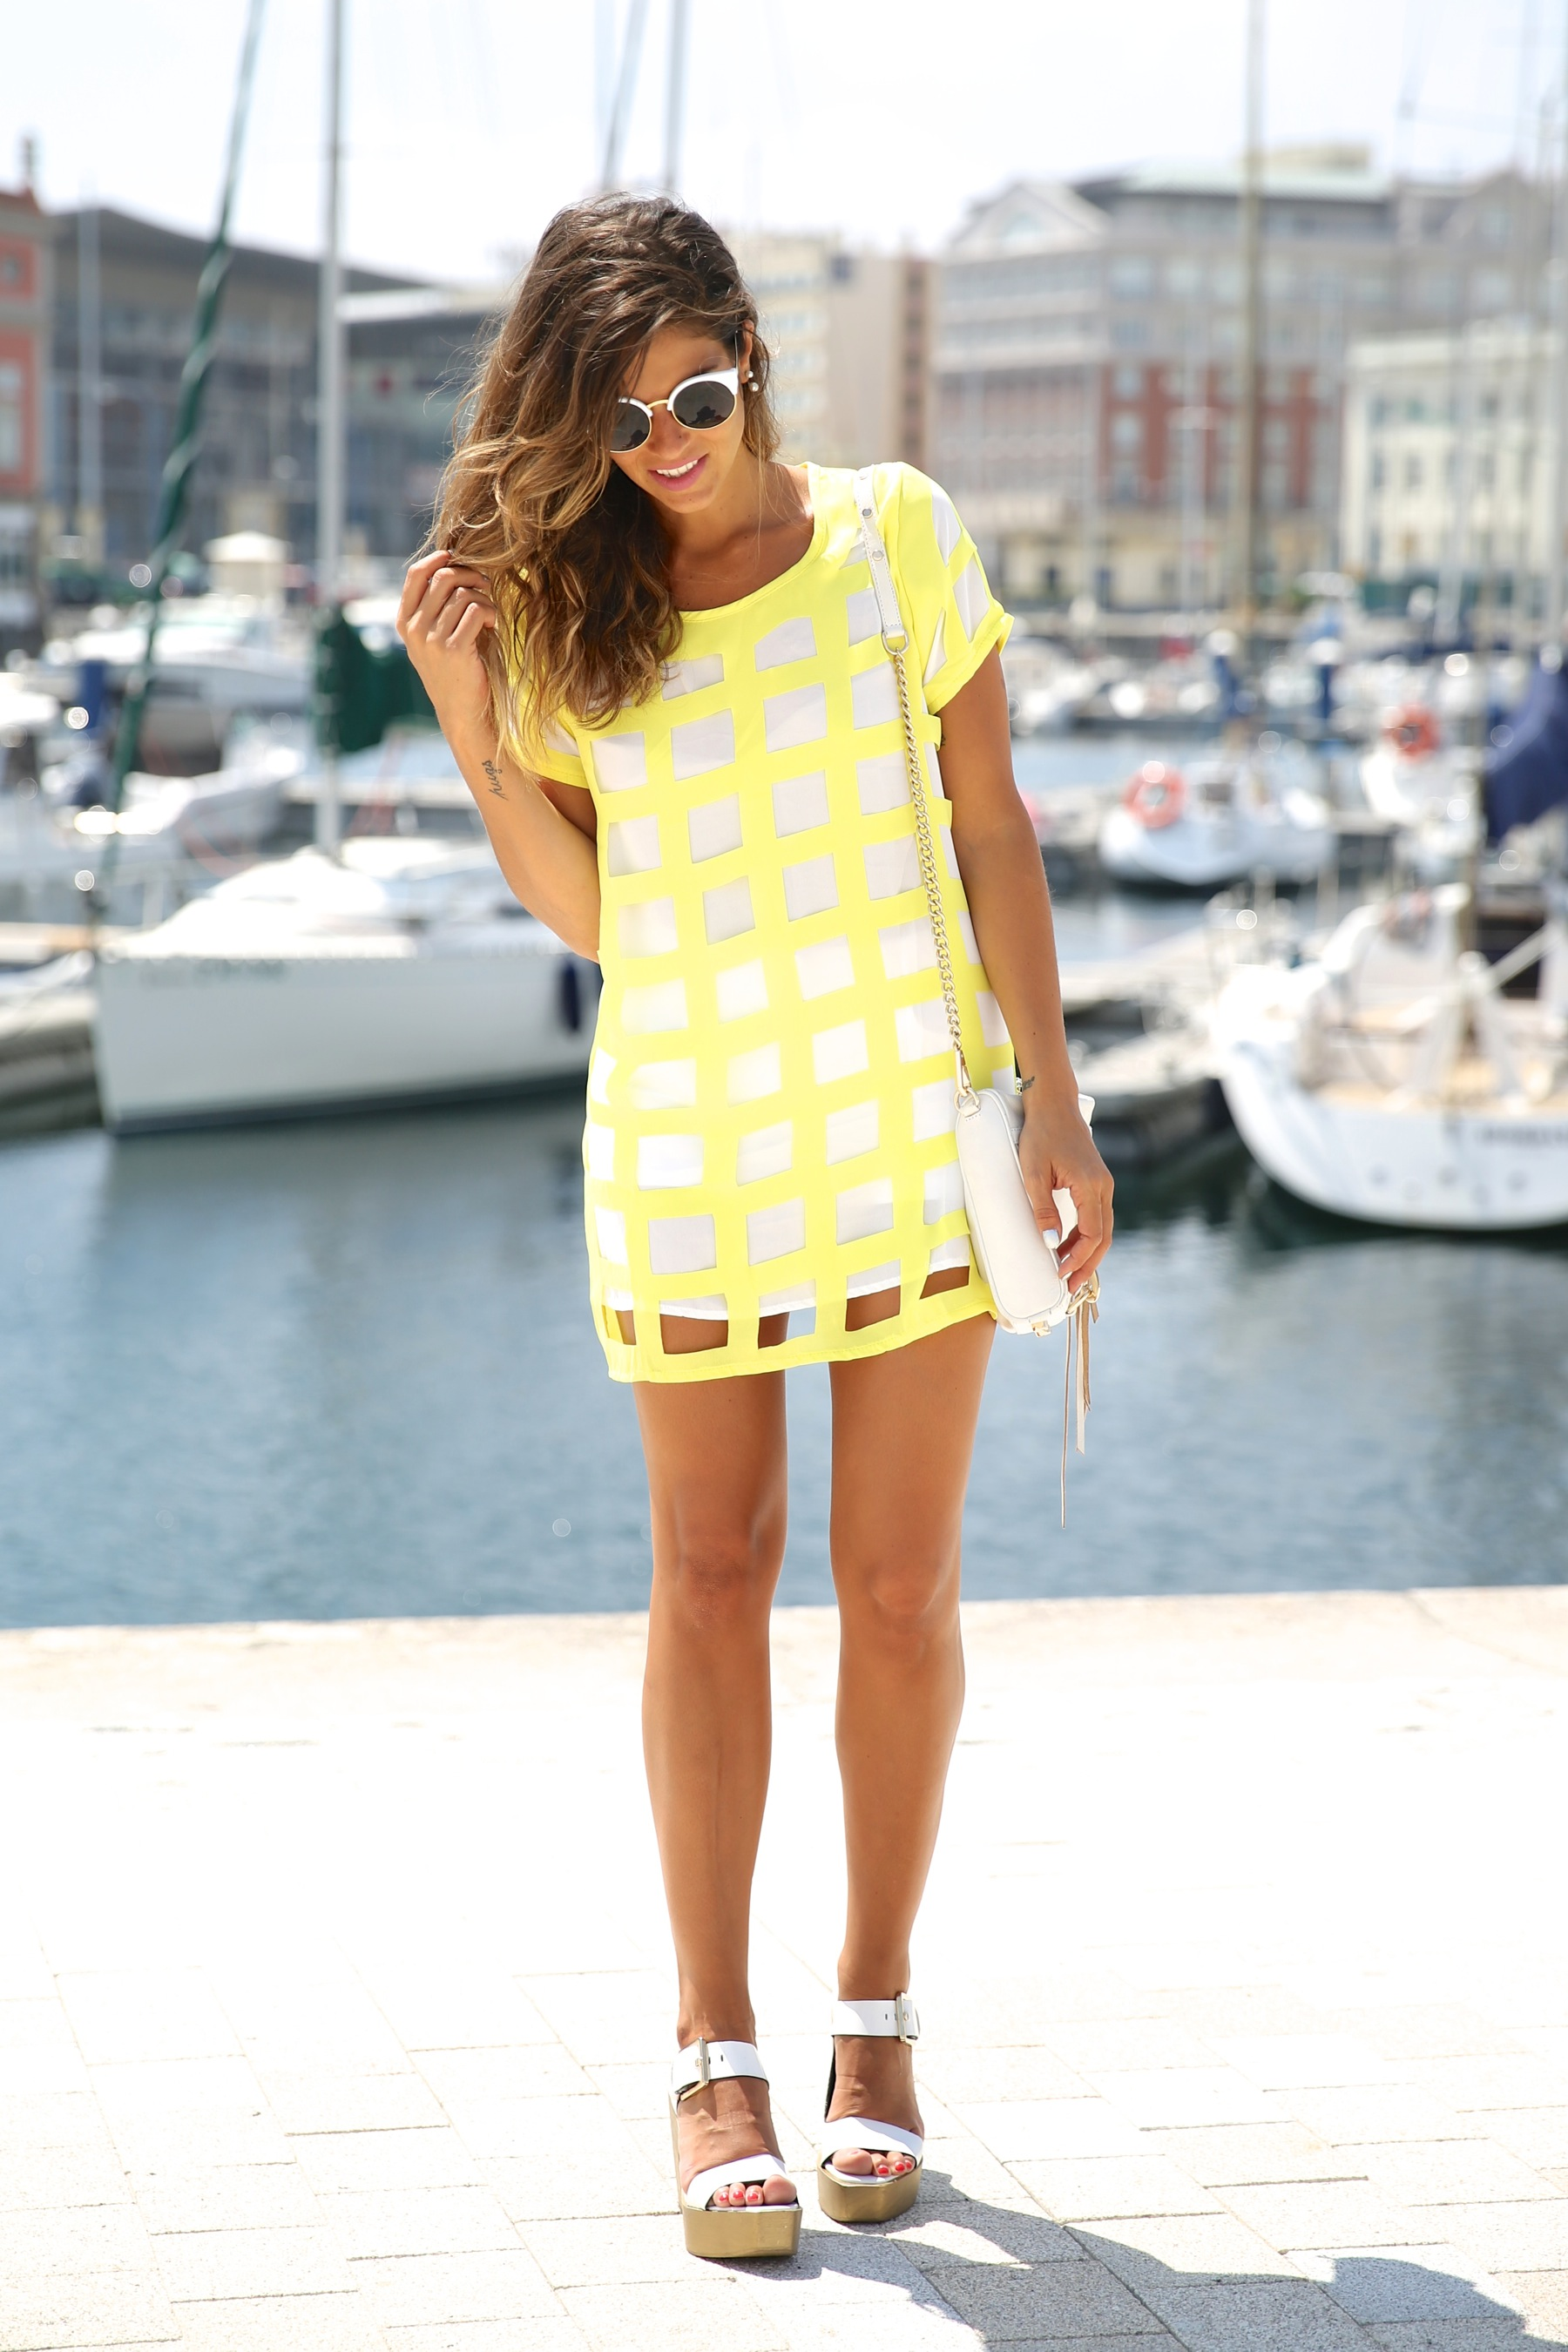 trendy_taste-look-outfit-street_style-ootd-blog-blogger-moda_españa-fashion_spain-coruña-galicia-sandalias_plataforma-platform_sandals-rebecca_minkoff-yellow-amarillo-vestido-dress-plaid-cuadros-11